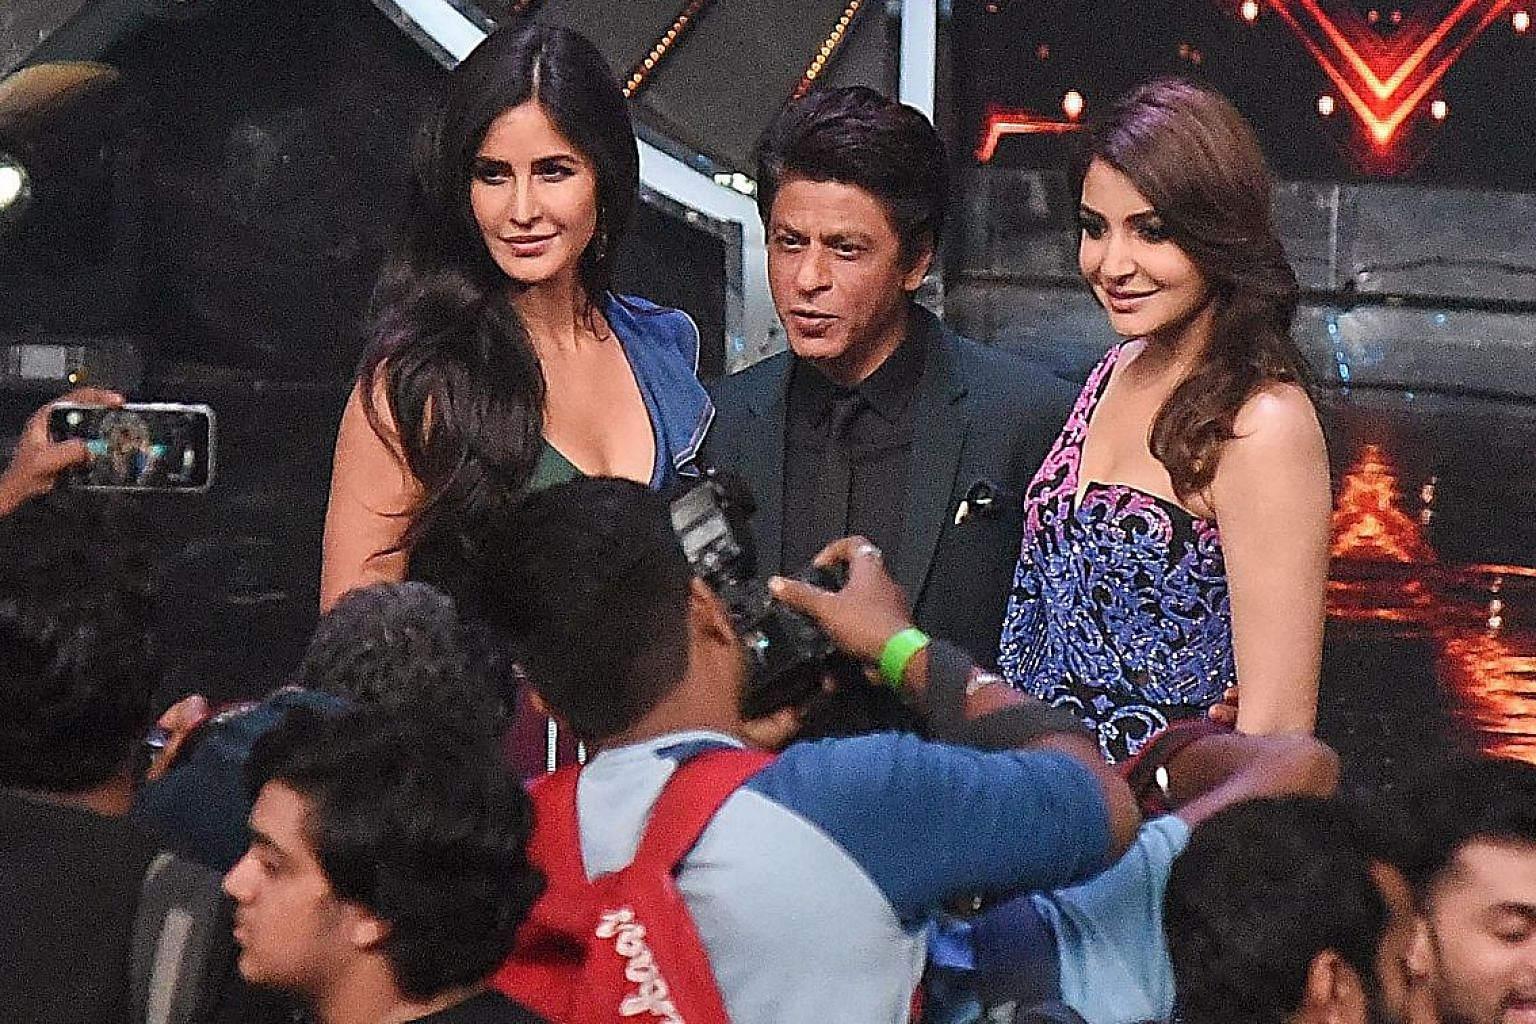 Actors (from left) Katrina Kaif, Shah Rukh Khan and Anushka Sharma promoting Zero on reality television singing show Indian Idol in Mumbai on Tuesday.